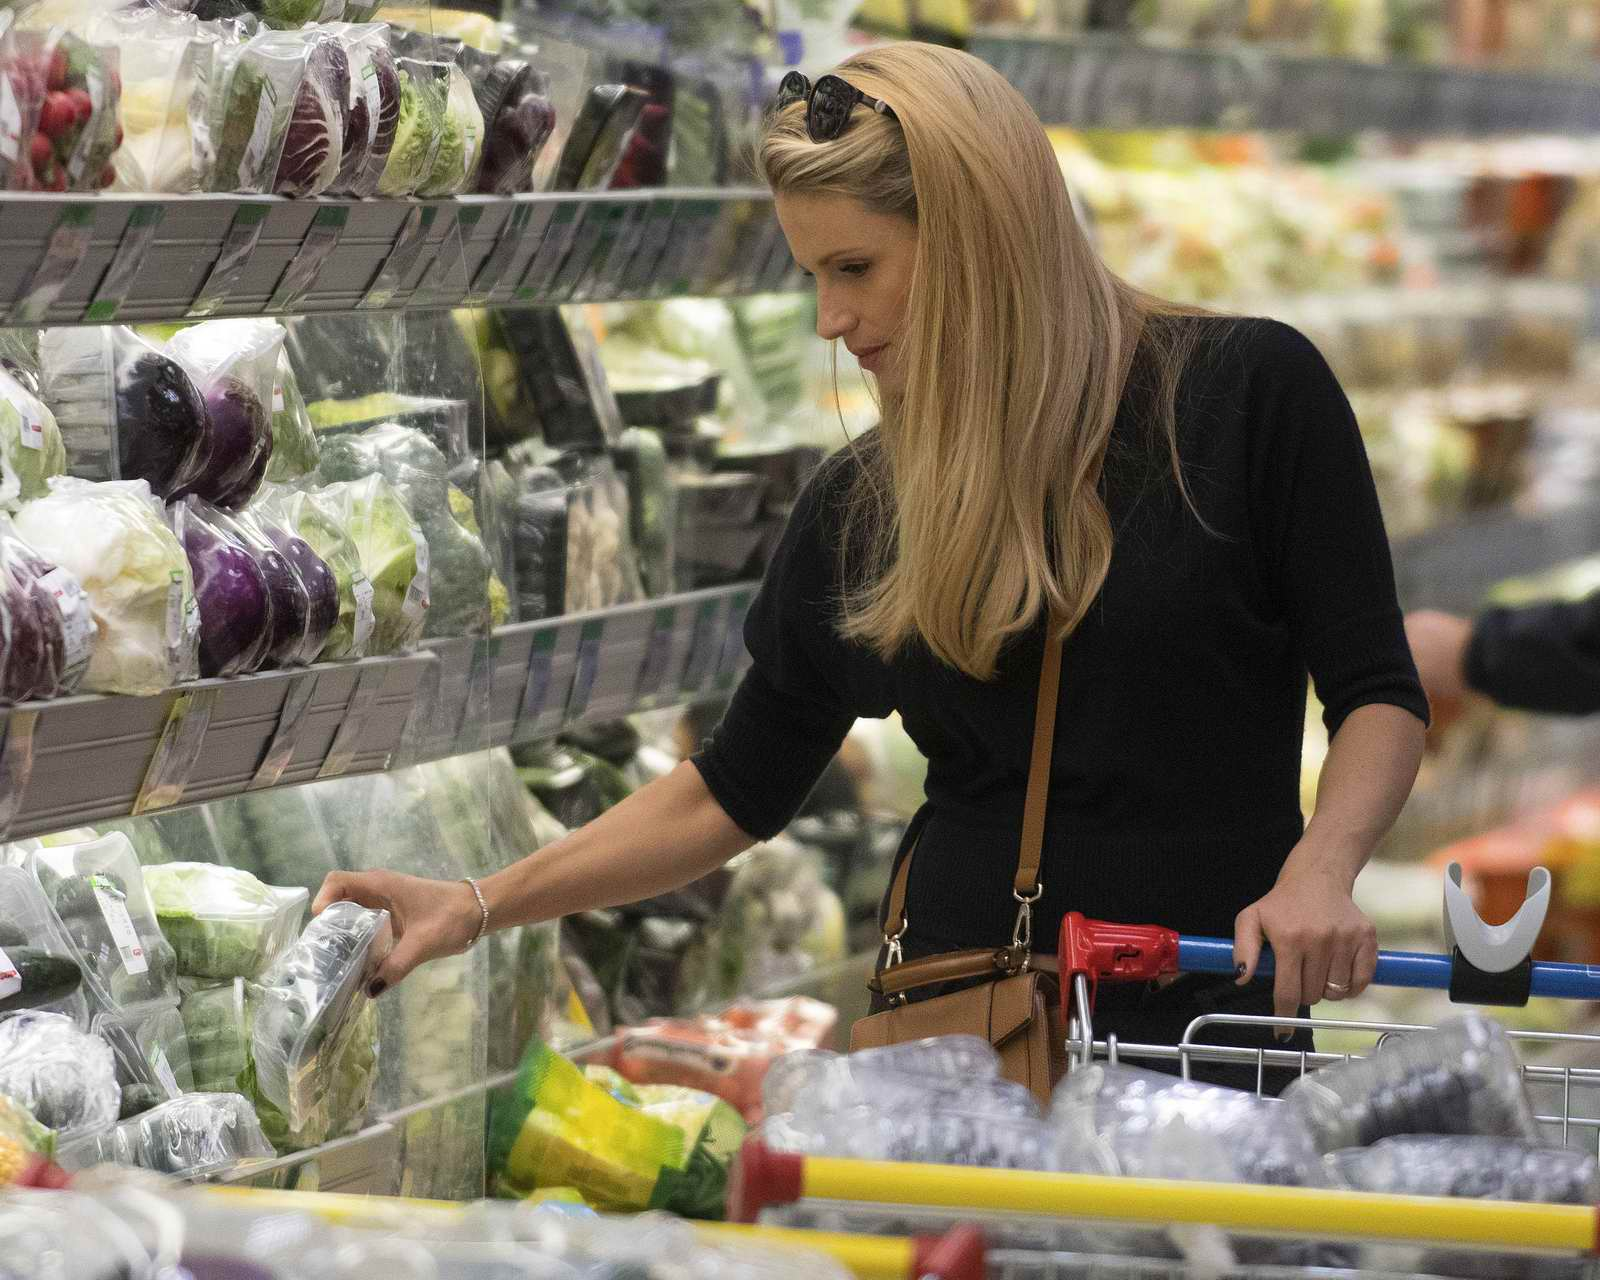 Michelle Hunziker shopping groceries at a supermarker in Milan, Italy